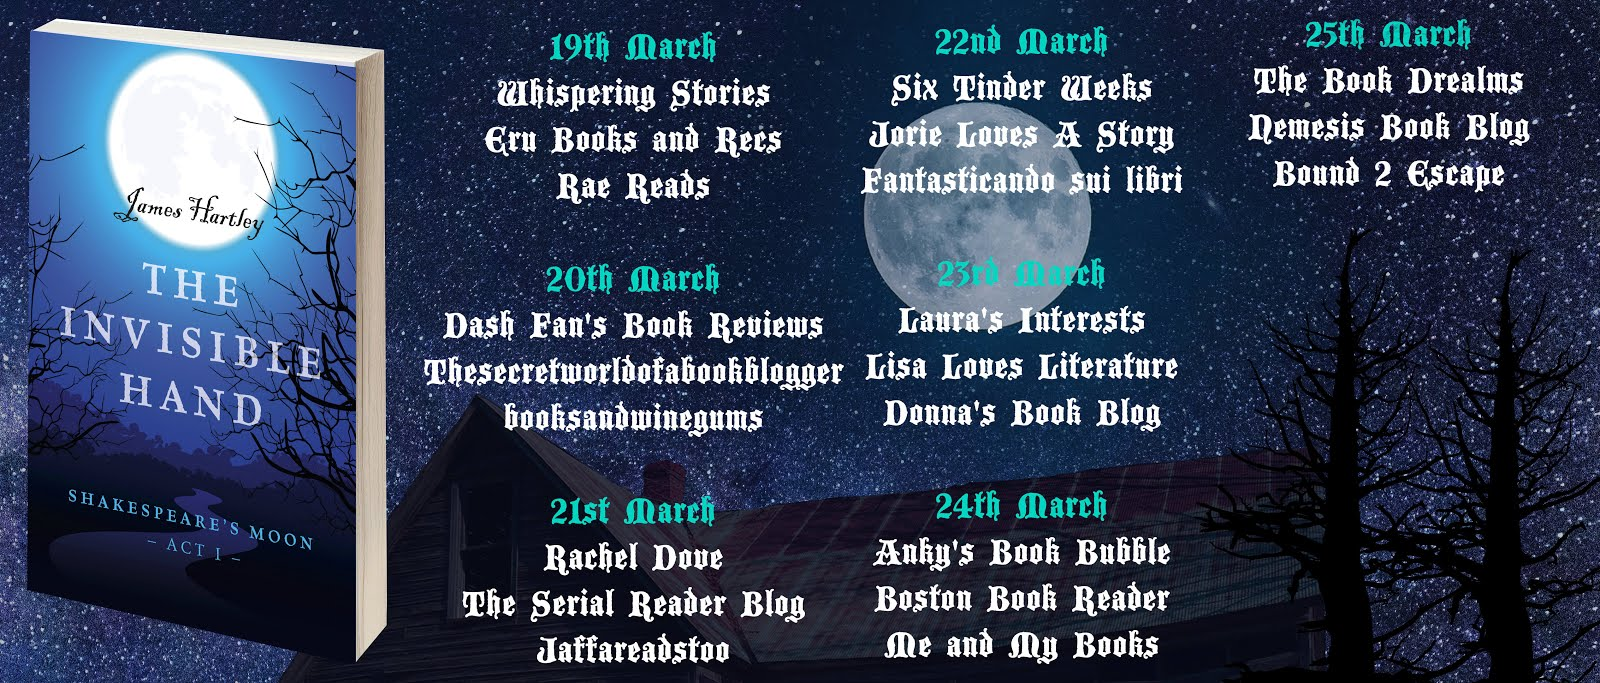 The Invisible Hand Blog Tour